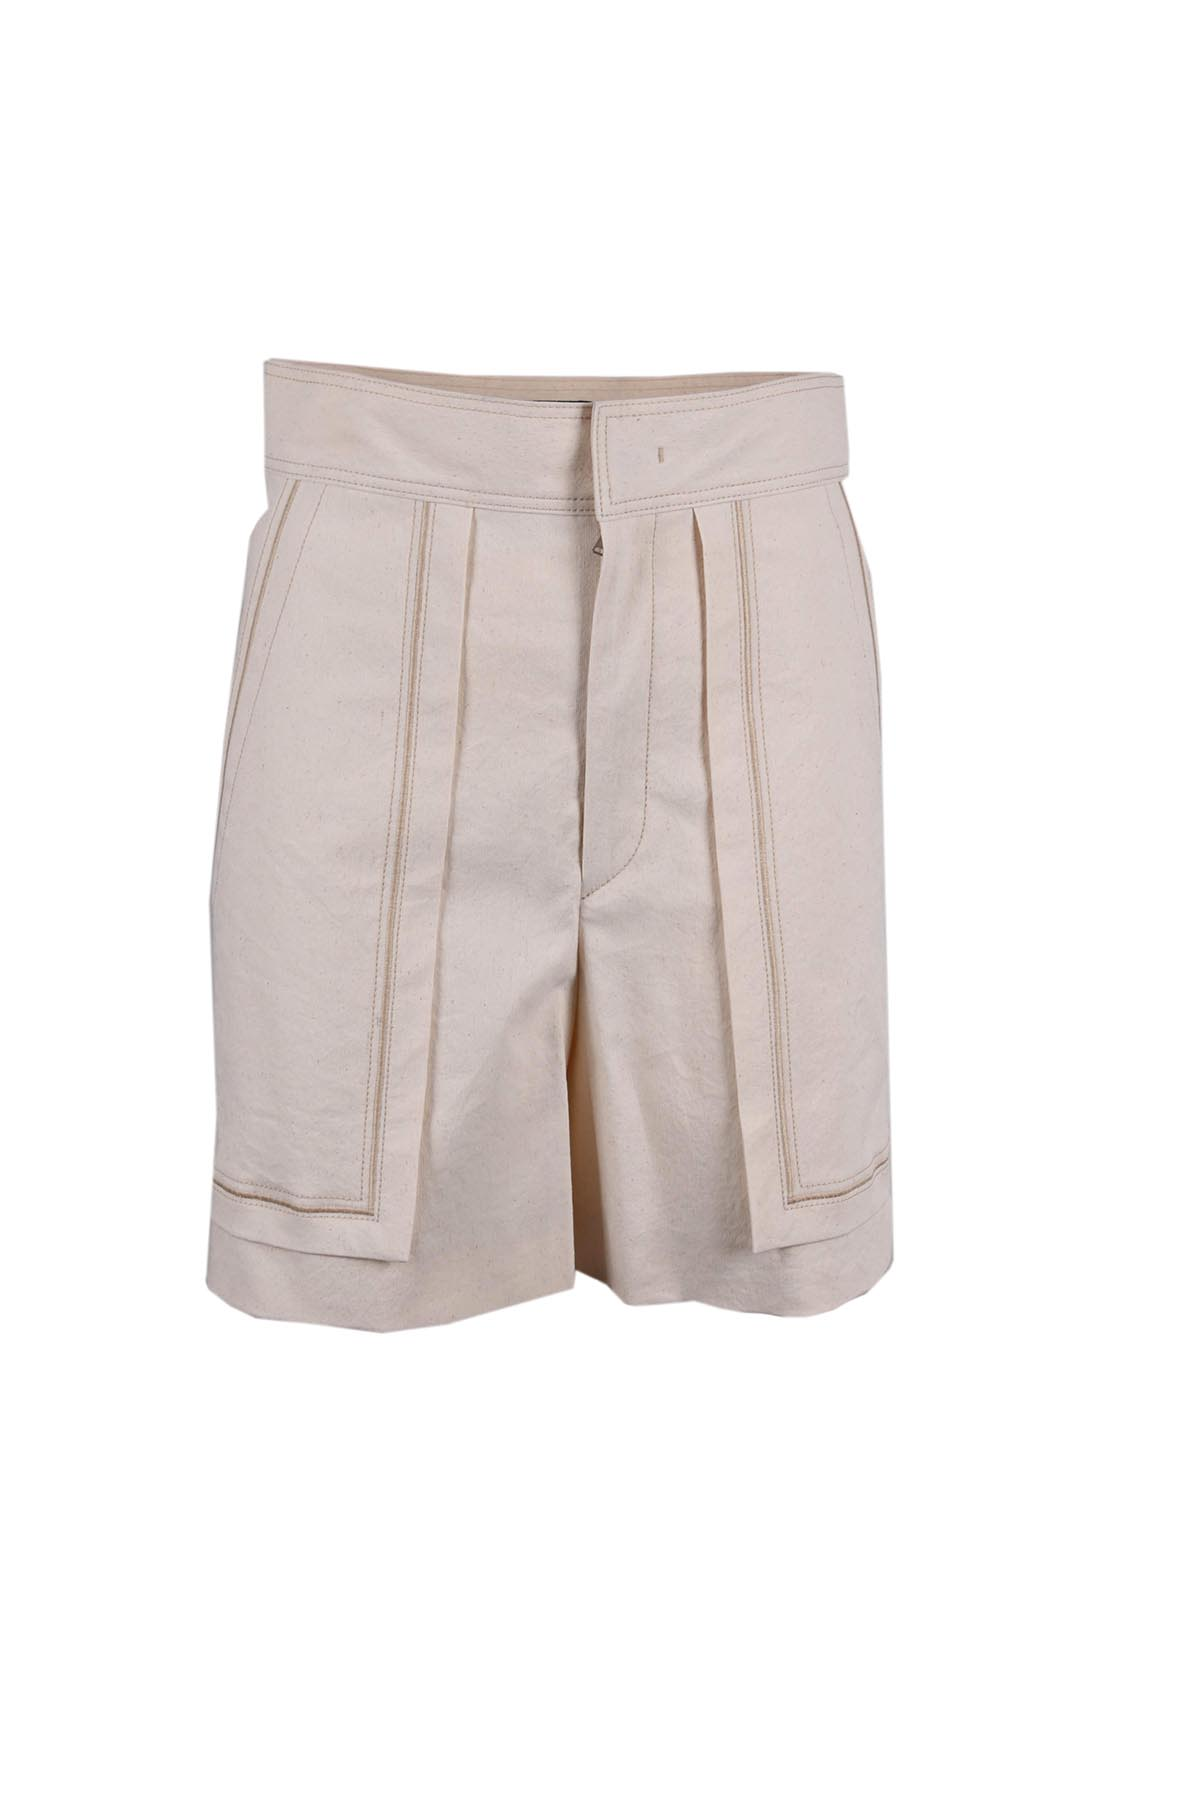 Isabel Marant Lucky Shorts